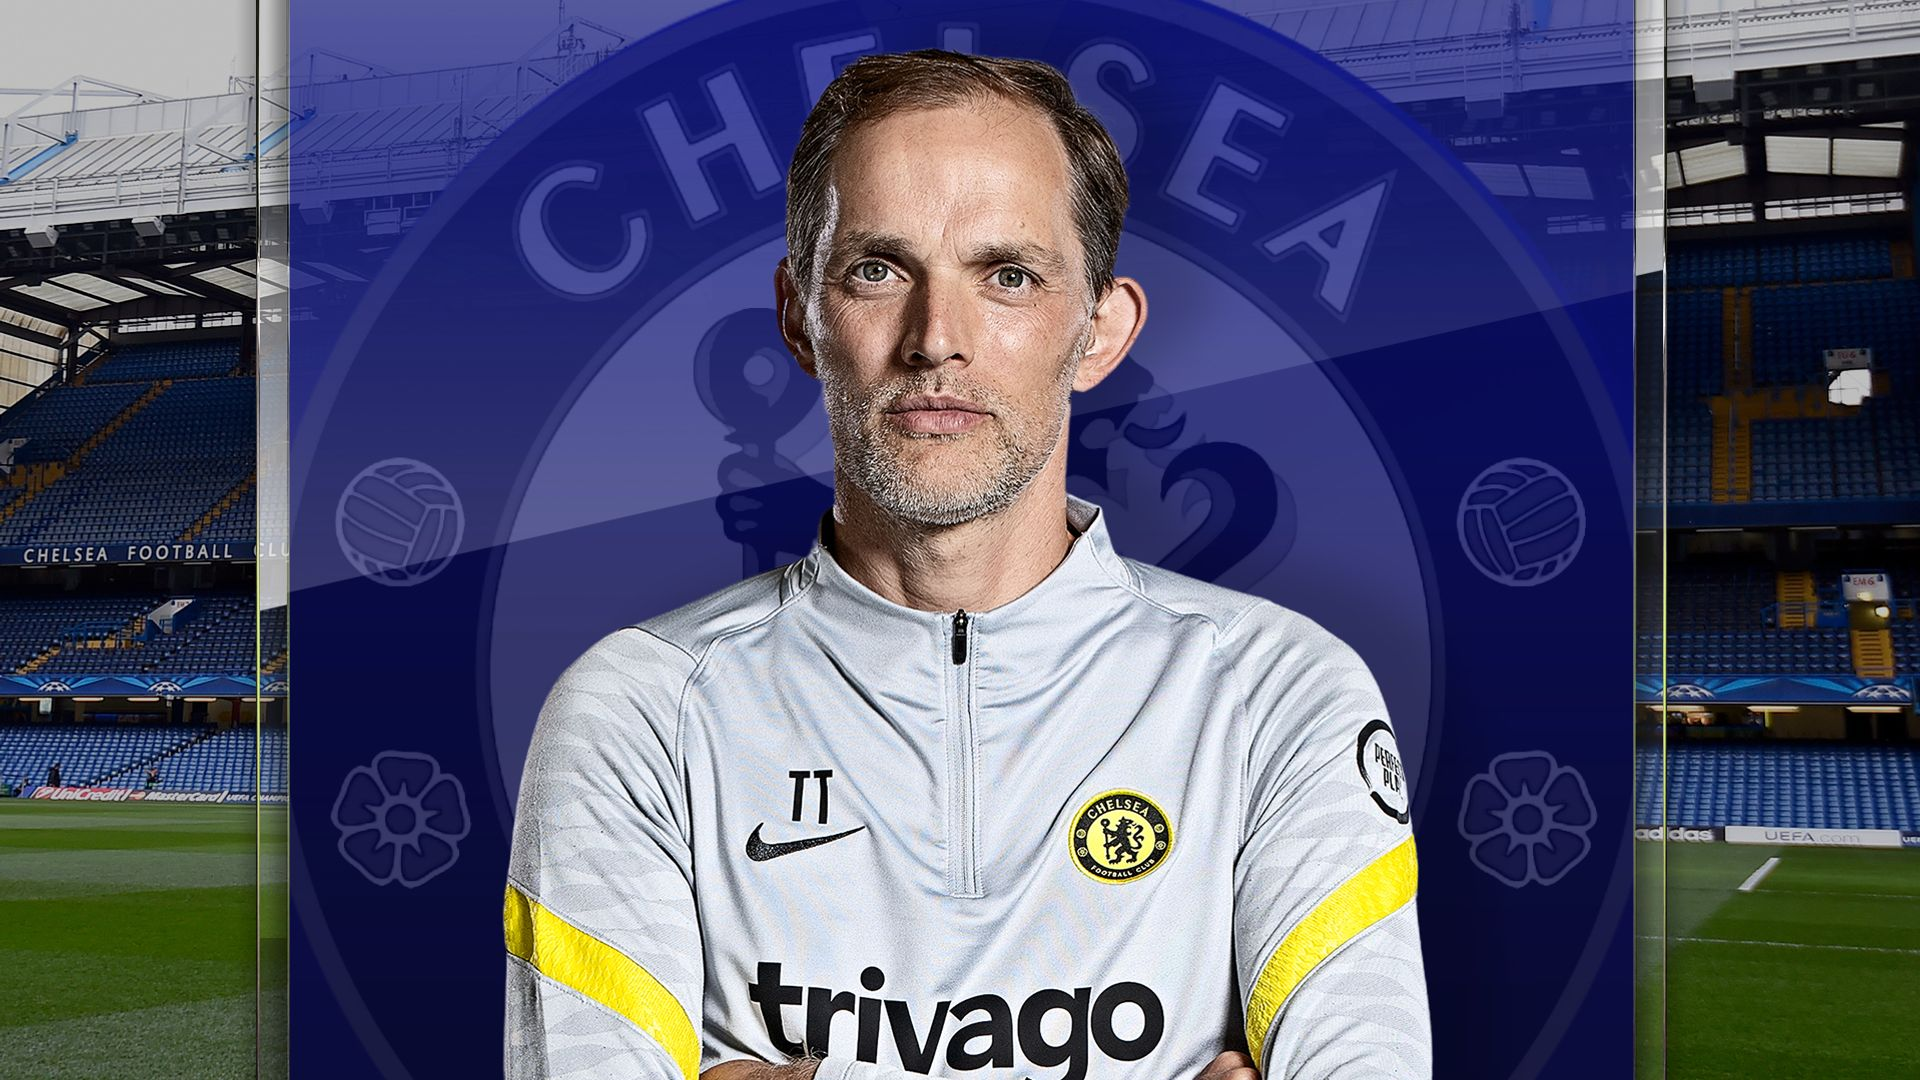 Thomas Tuchel exclusive: Chelsea boss on the Blues' bond, Louis van Gaal's tactical praise, and early morning runs